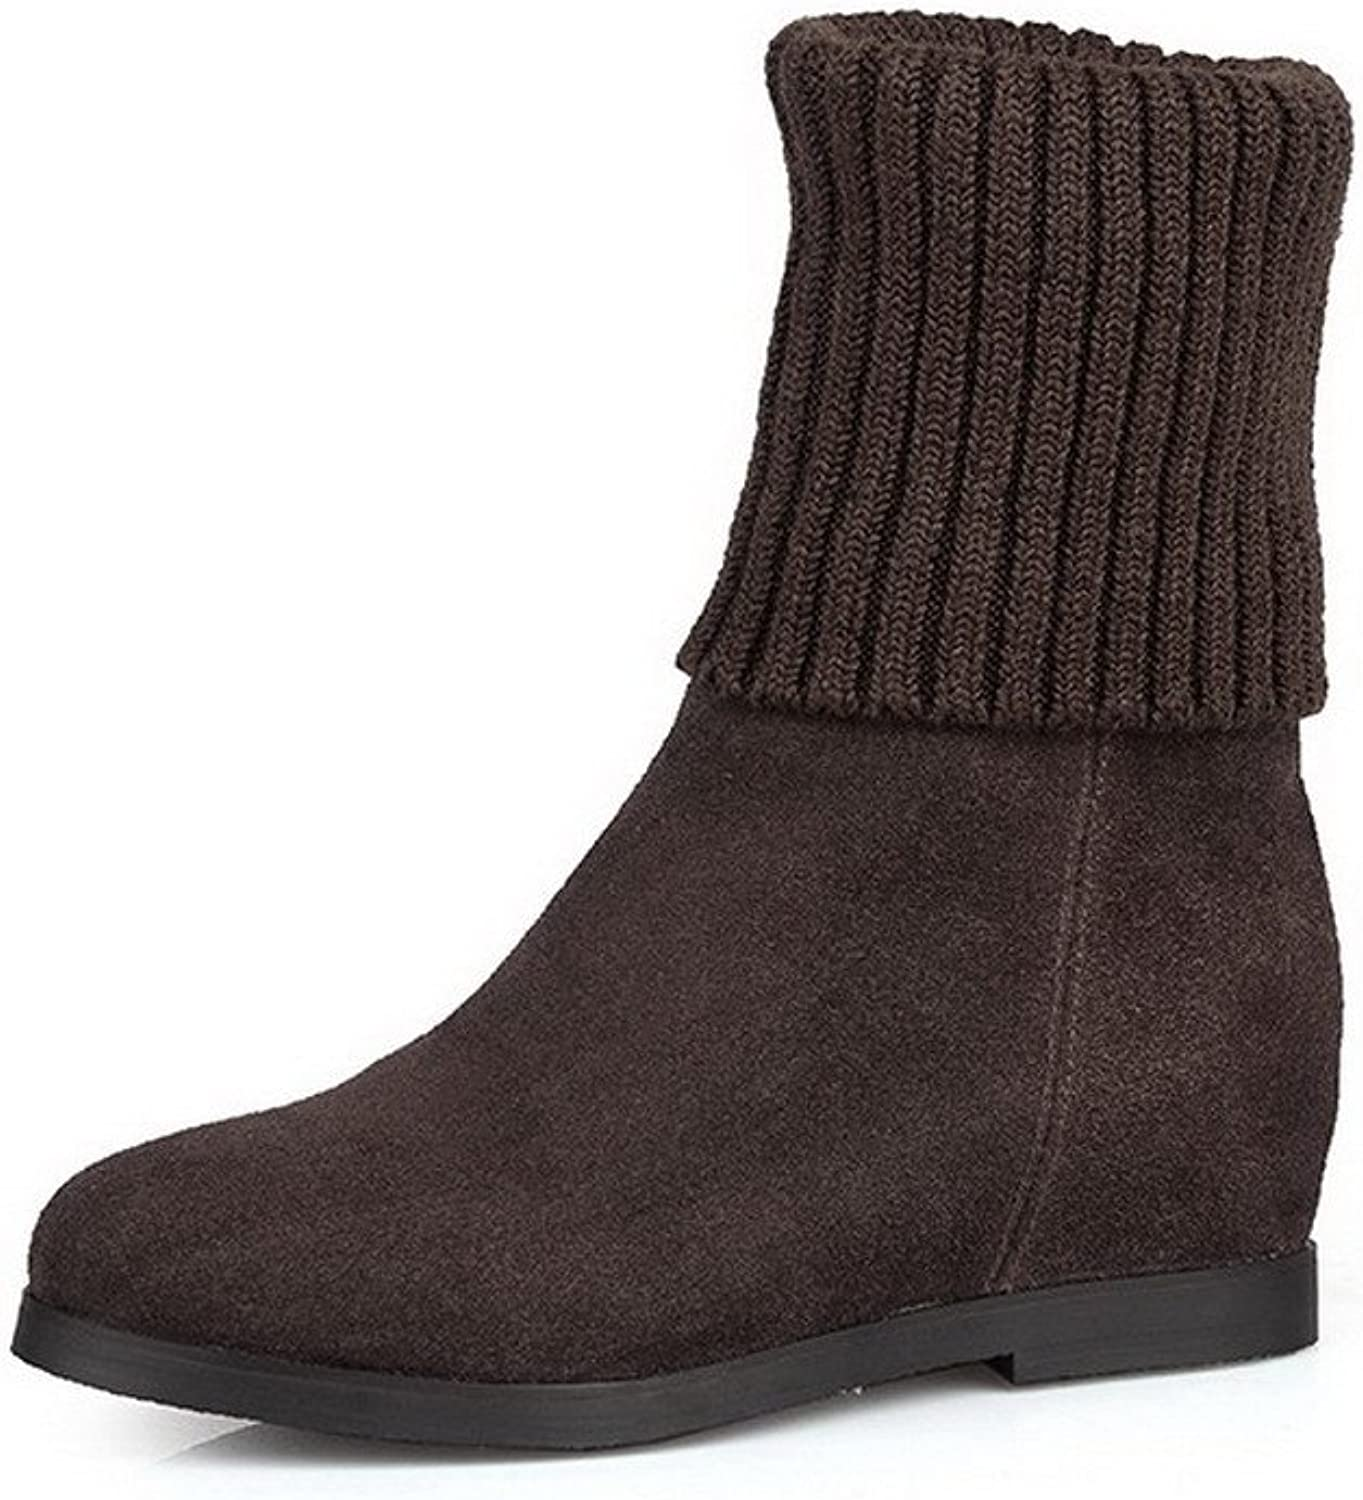 AllhqFashion Women's Cow Leather Frosted No-Heel Boots